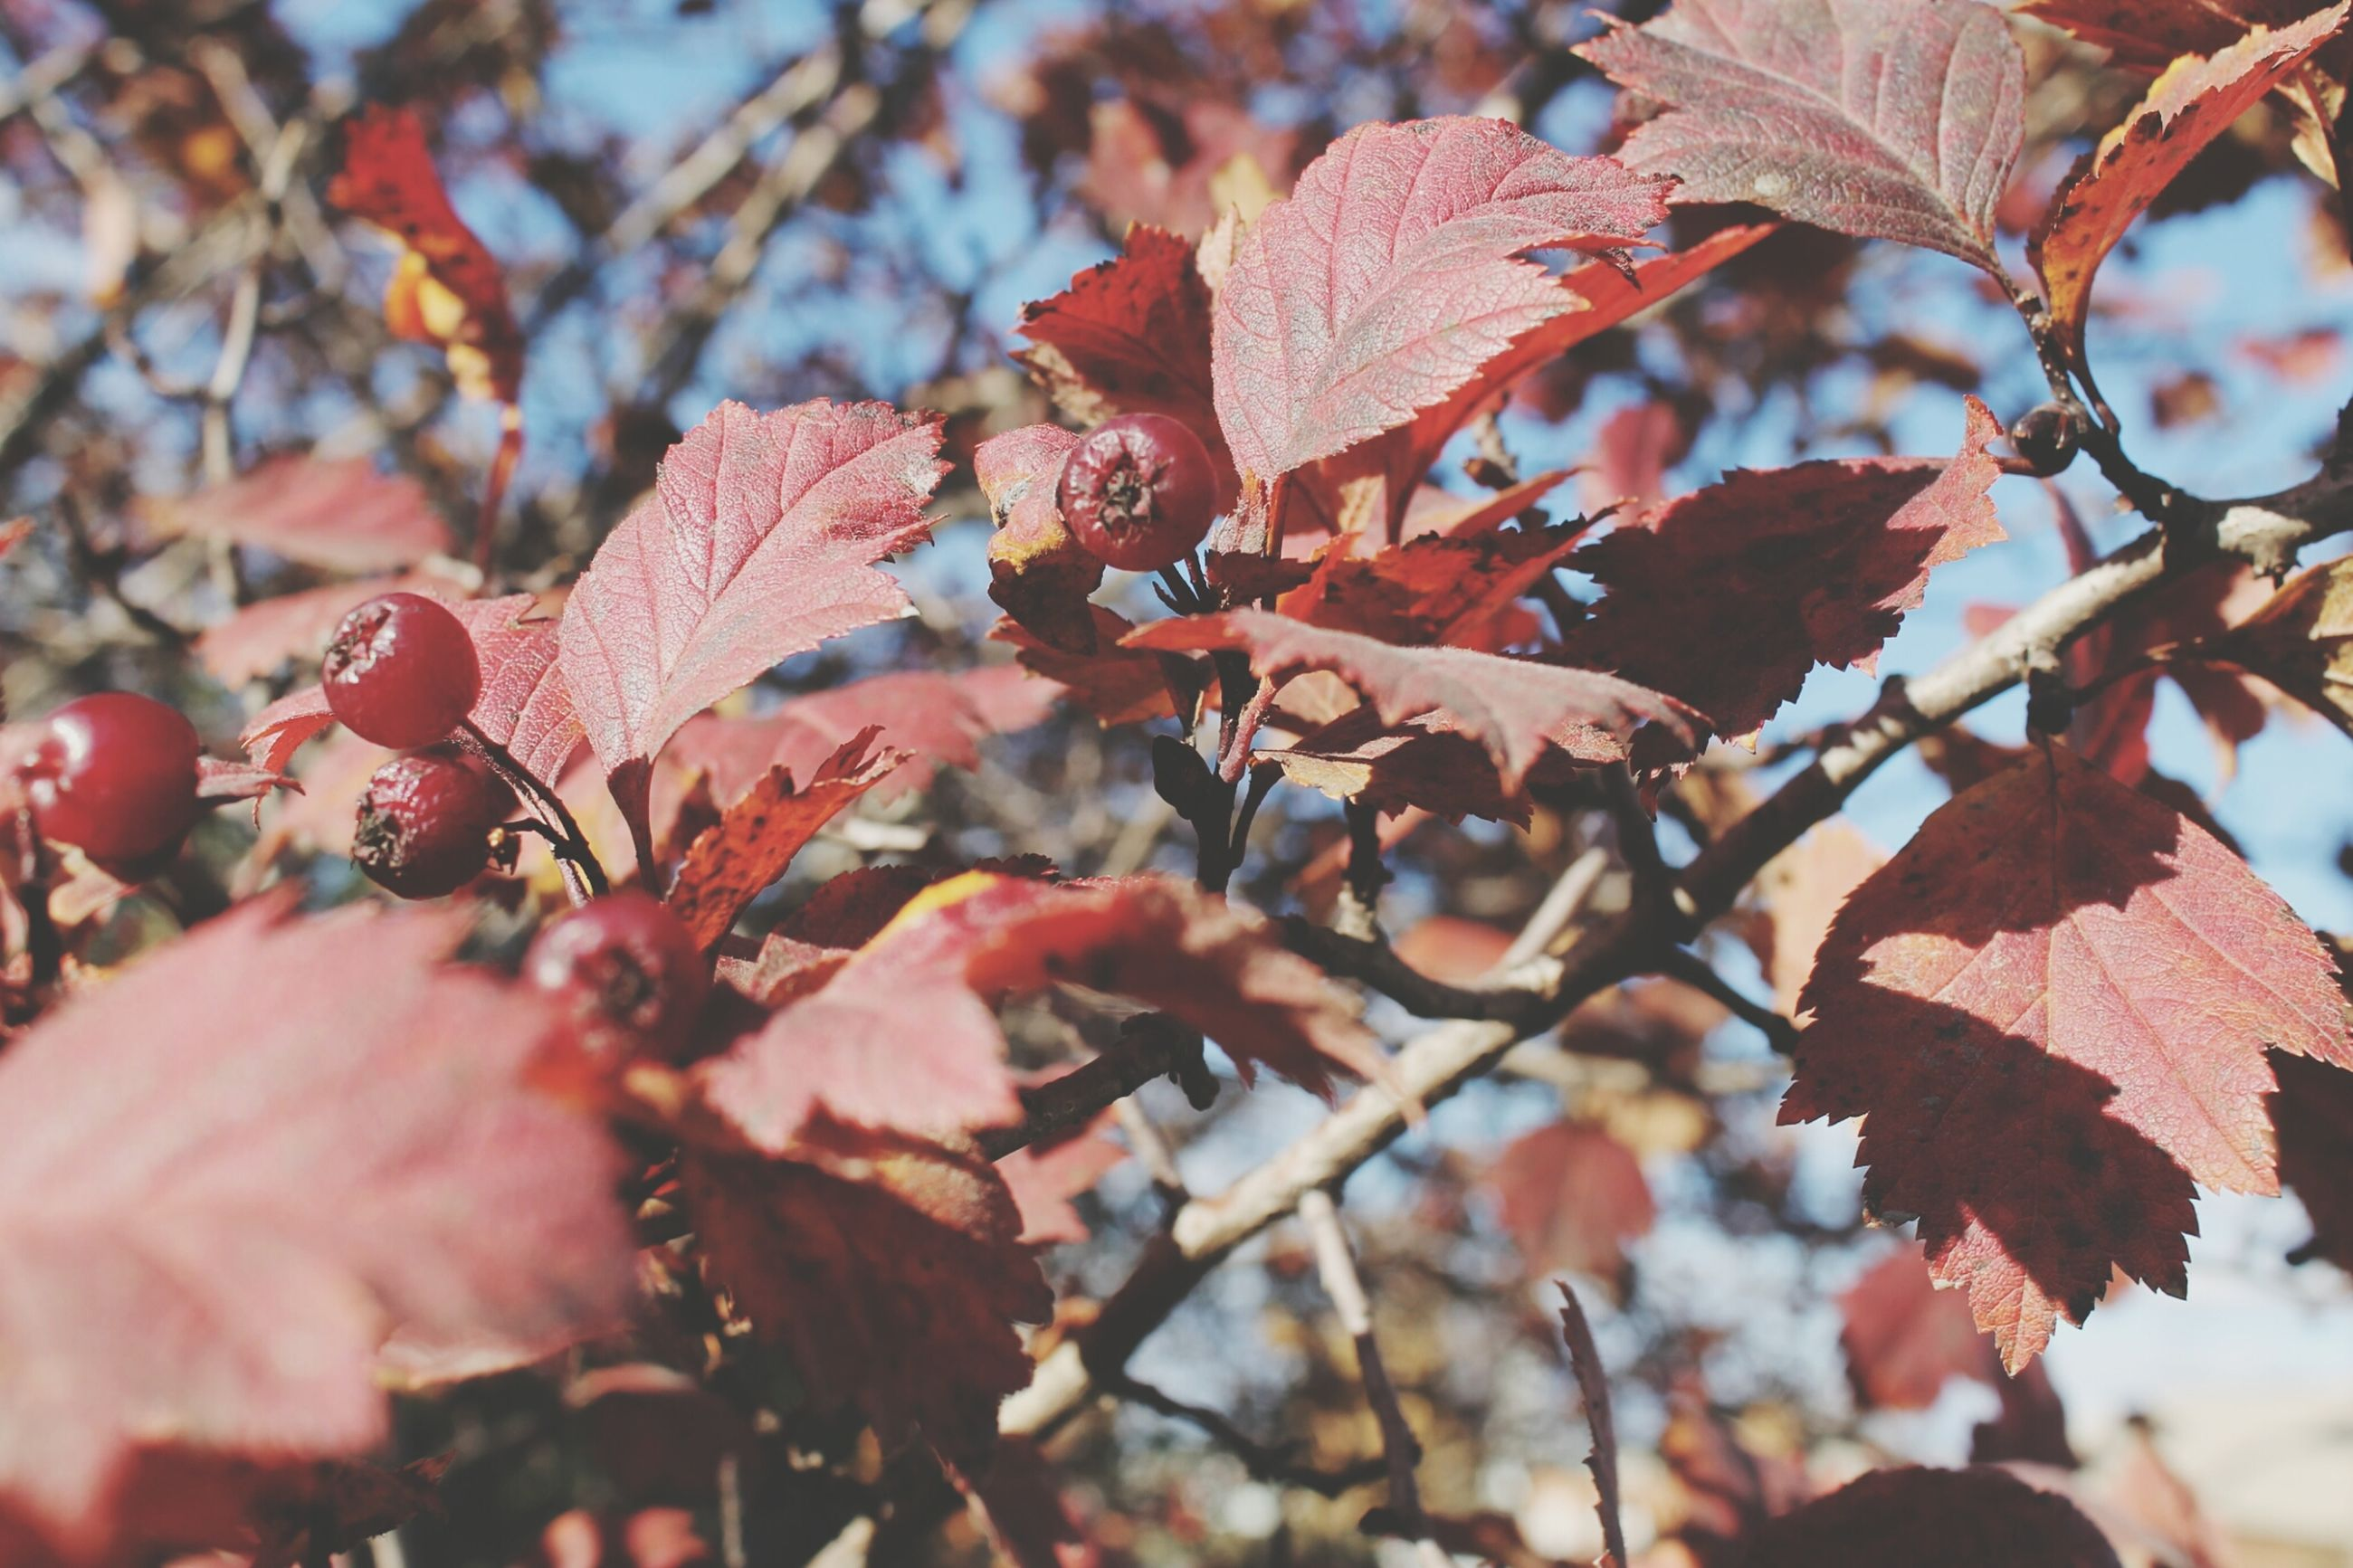 leaf, autumn, branch, tree, season, change, leaves, nature, growth, focus on foreground, close-up, beauty in nature, low angle view, tranquility, selective focus, leaf vein, outdoors, day, maple leaf, twig